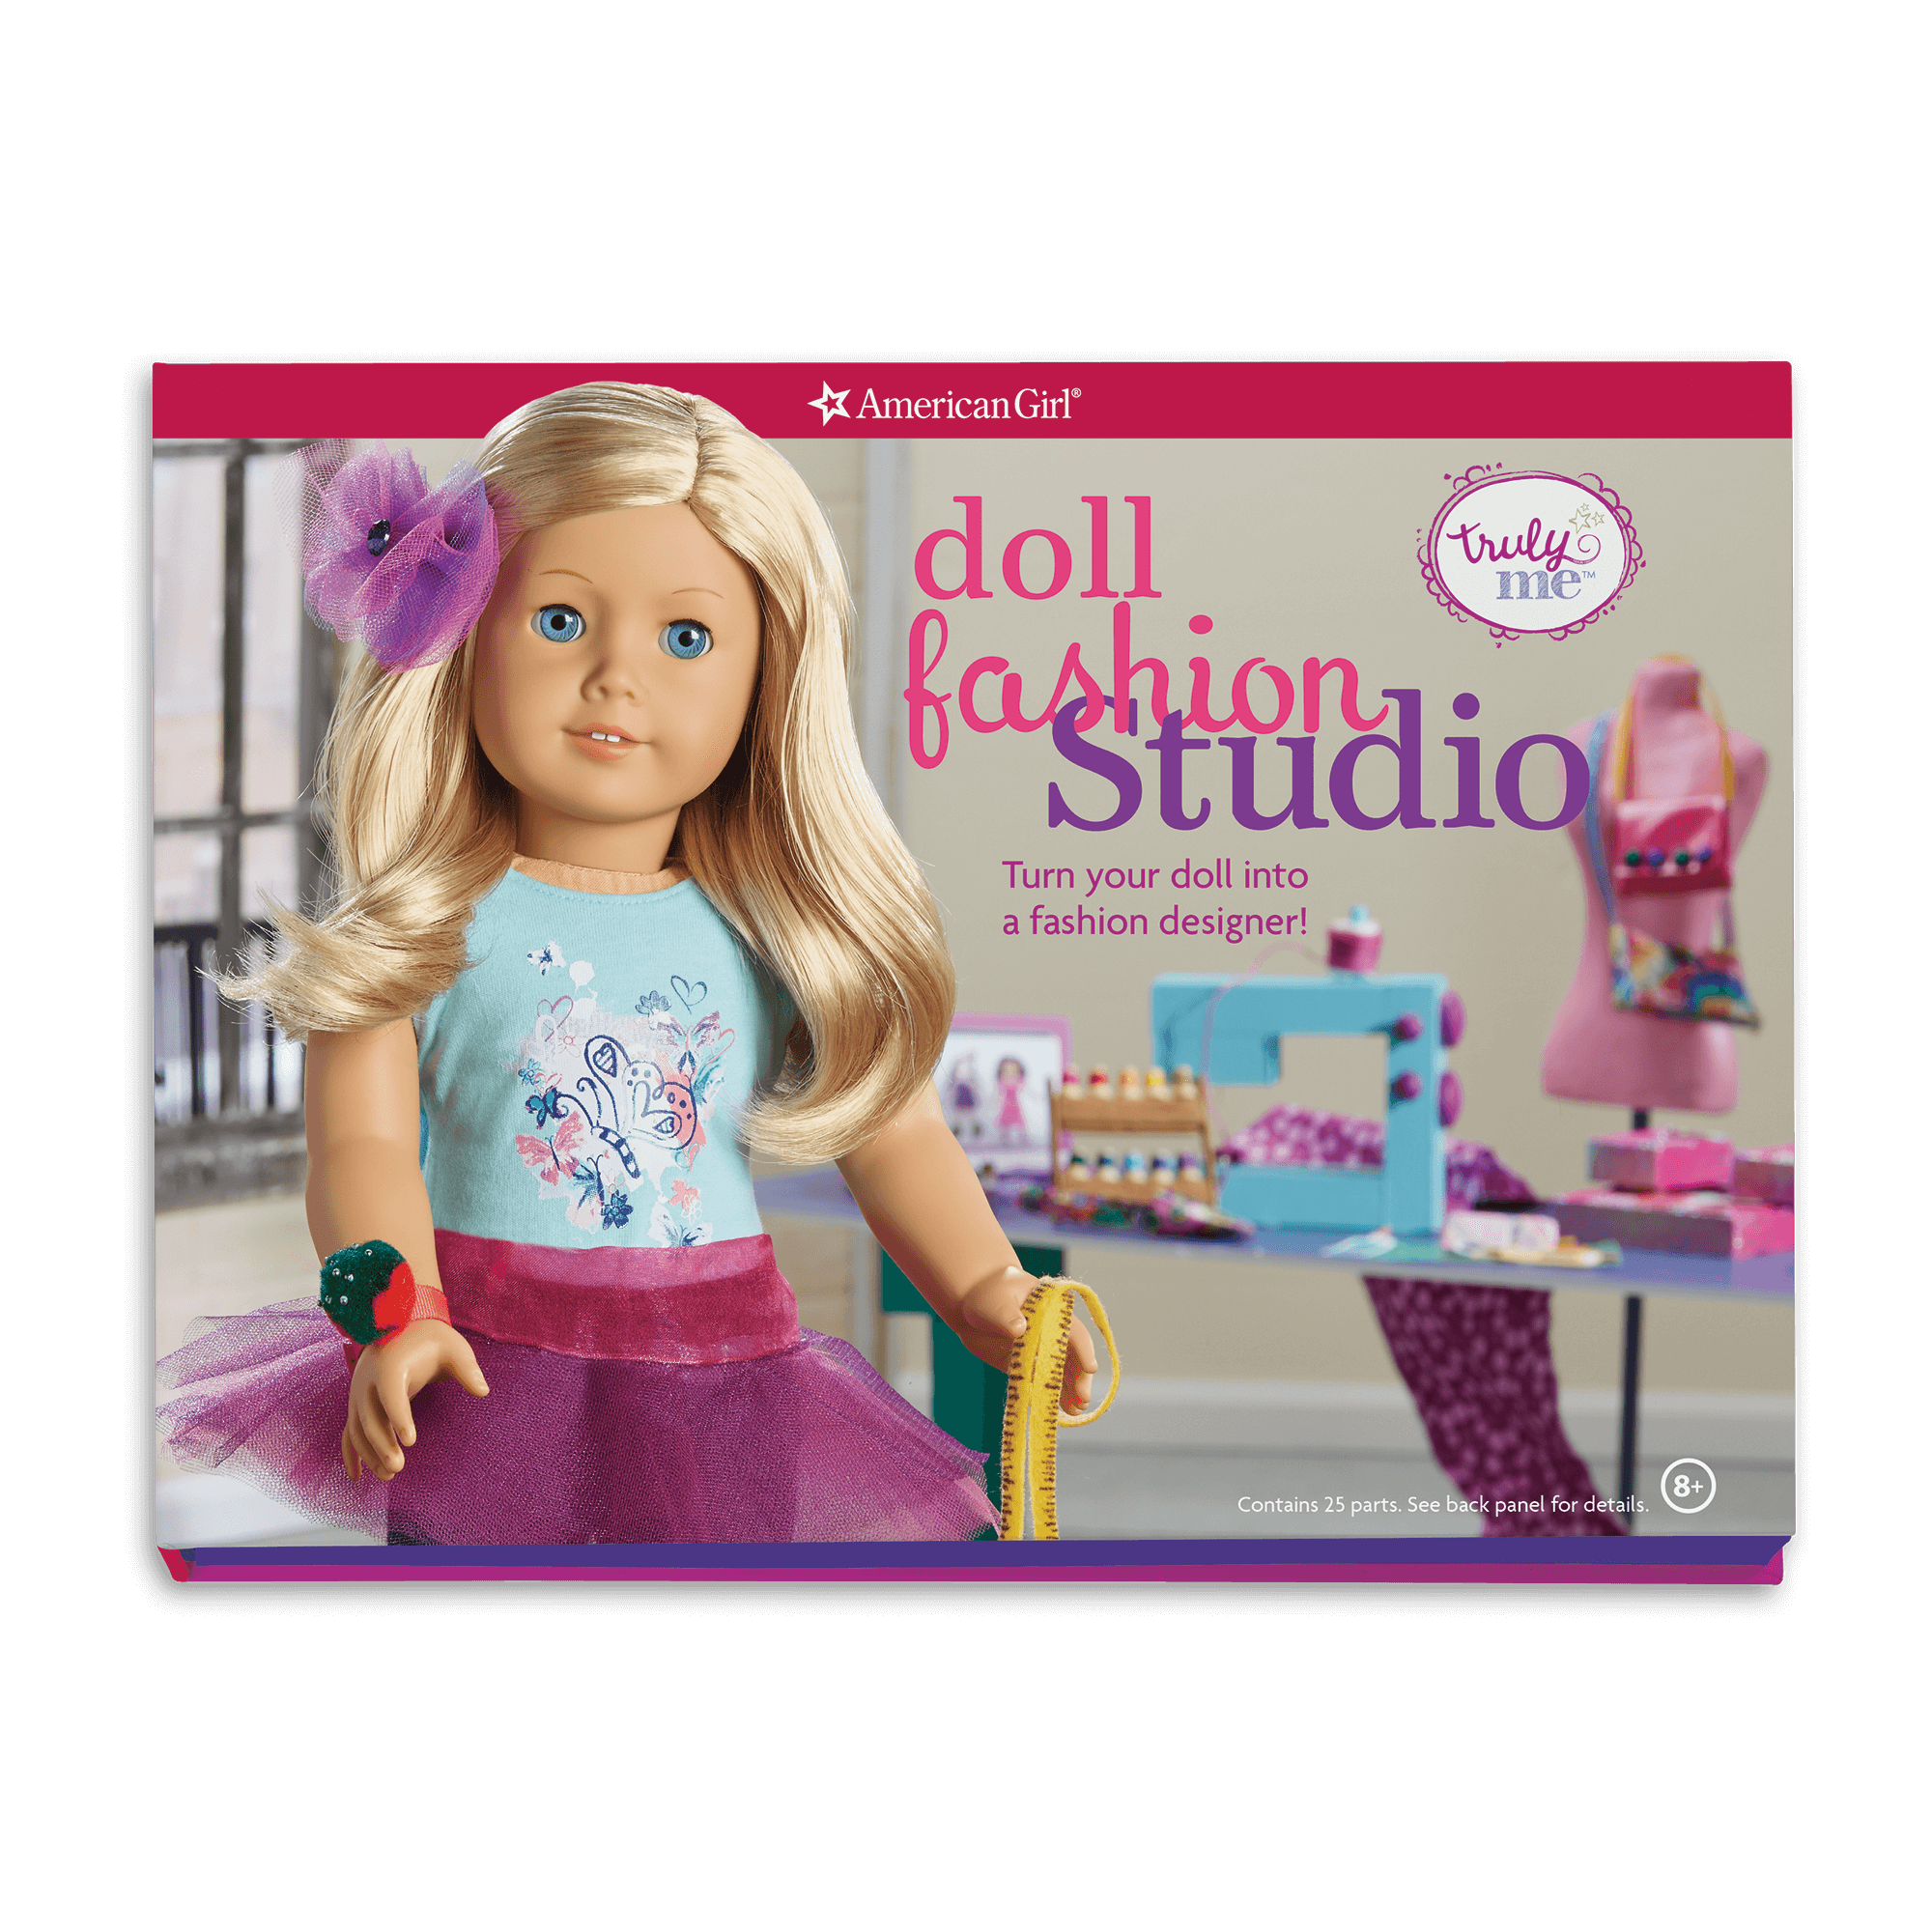 Barbie Is Unapologetic About Her New Career As An Entrepreneur Barbie Is Unapologetic About Her New Career As An Entrepreneur new pics